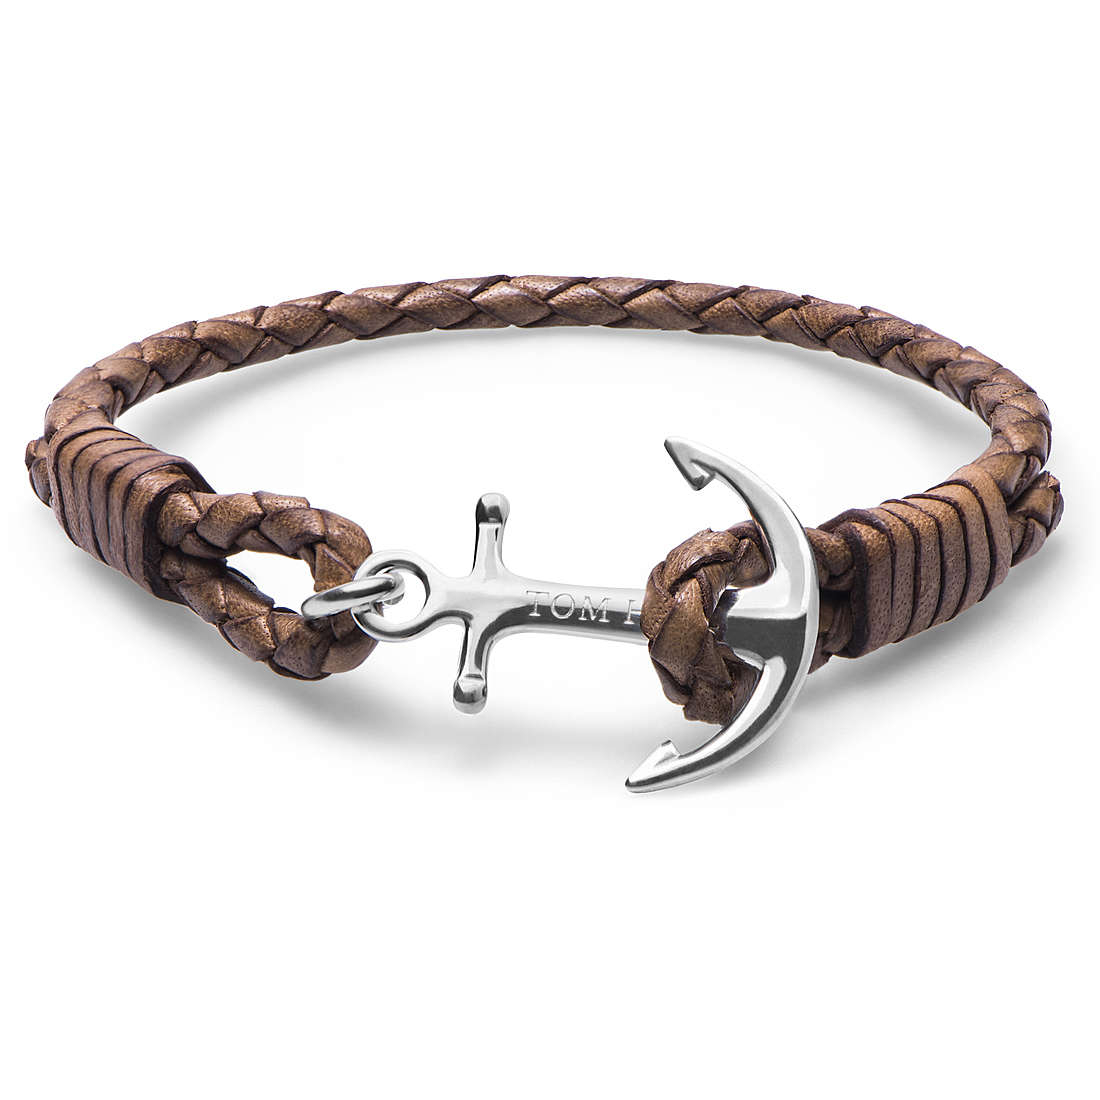 Bracciale unisex Tom Hope. Cognac